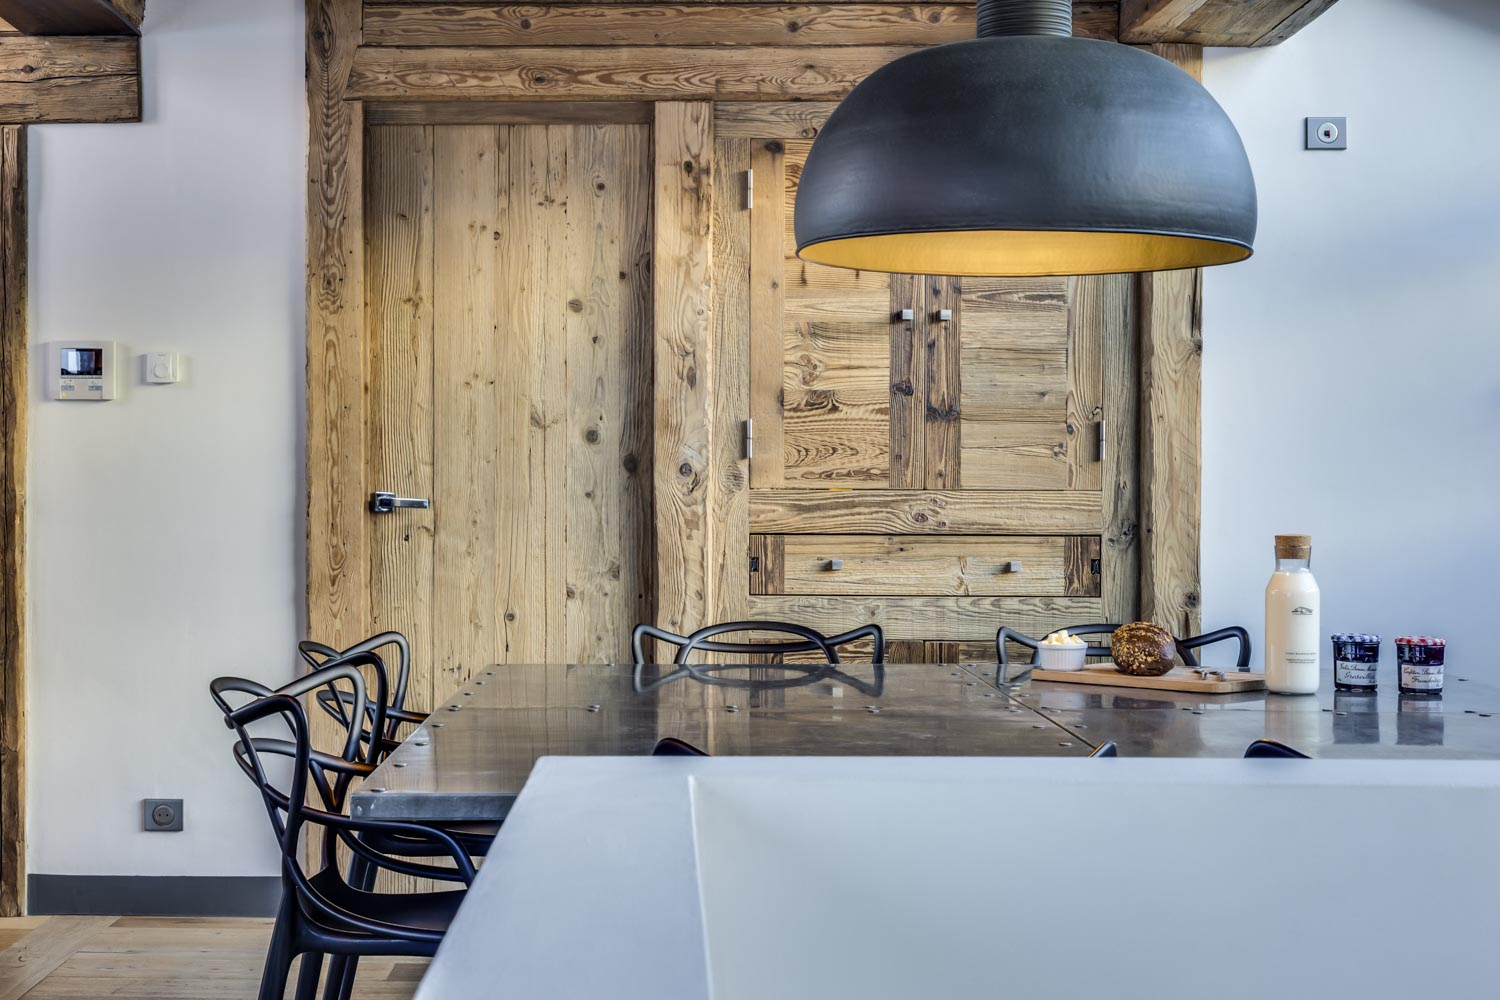 Chalet Daria - Luxury Chalet - Val D'Isère - Breakfast - Metal Table